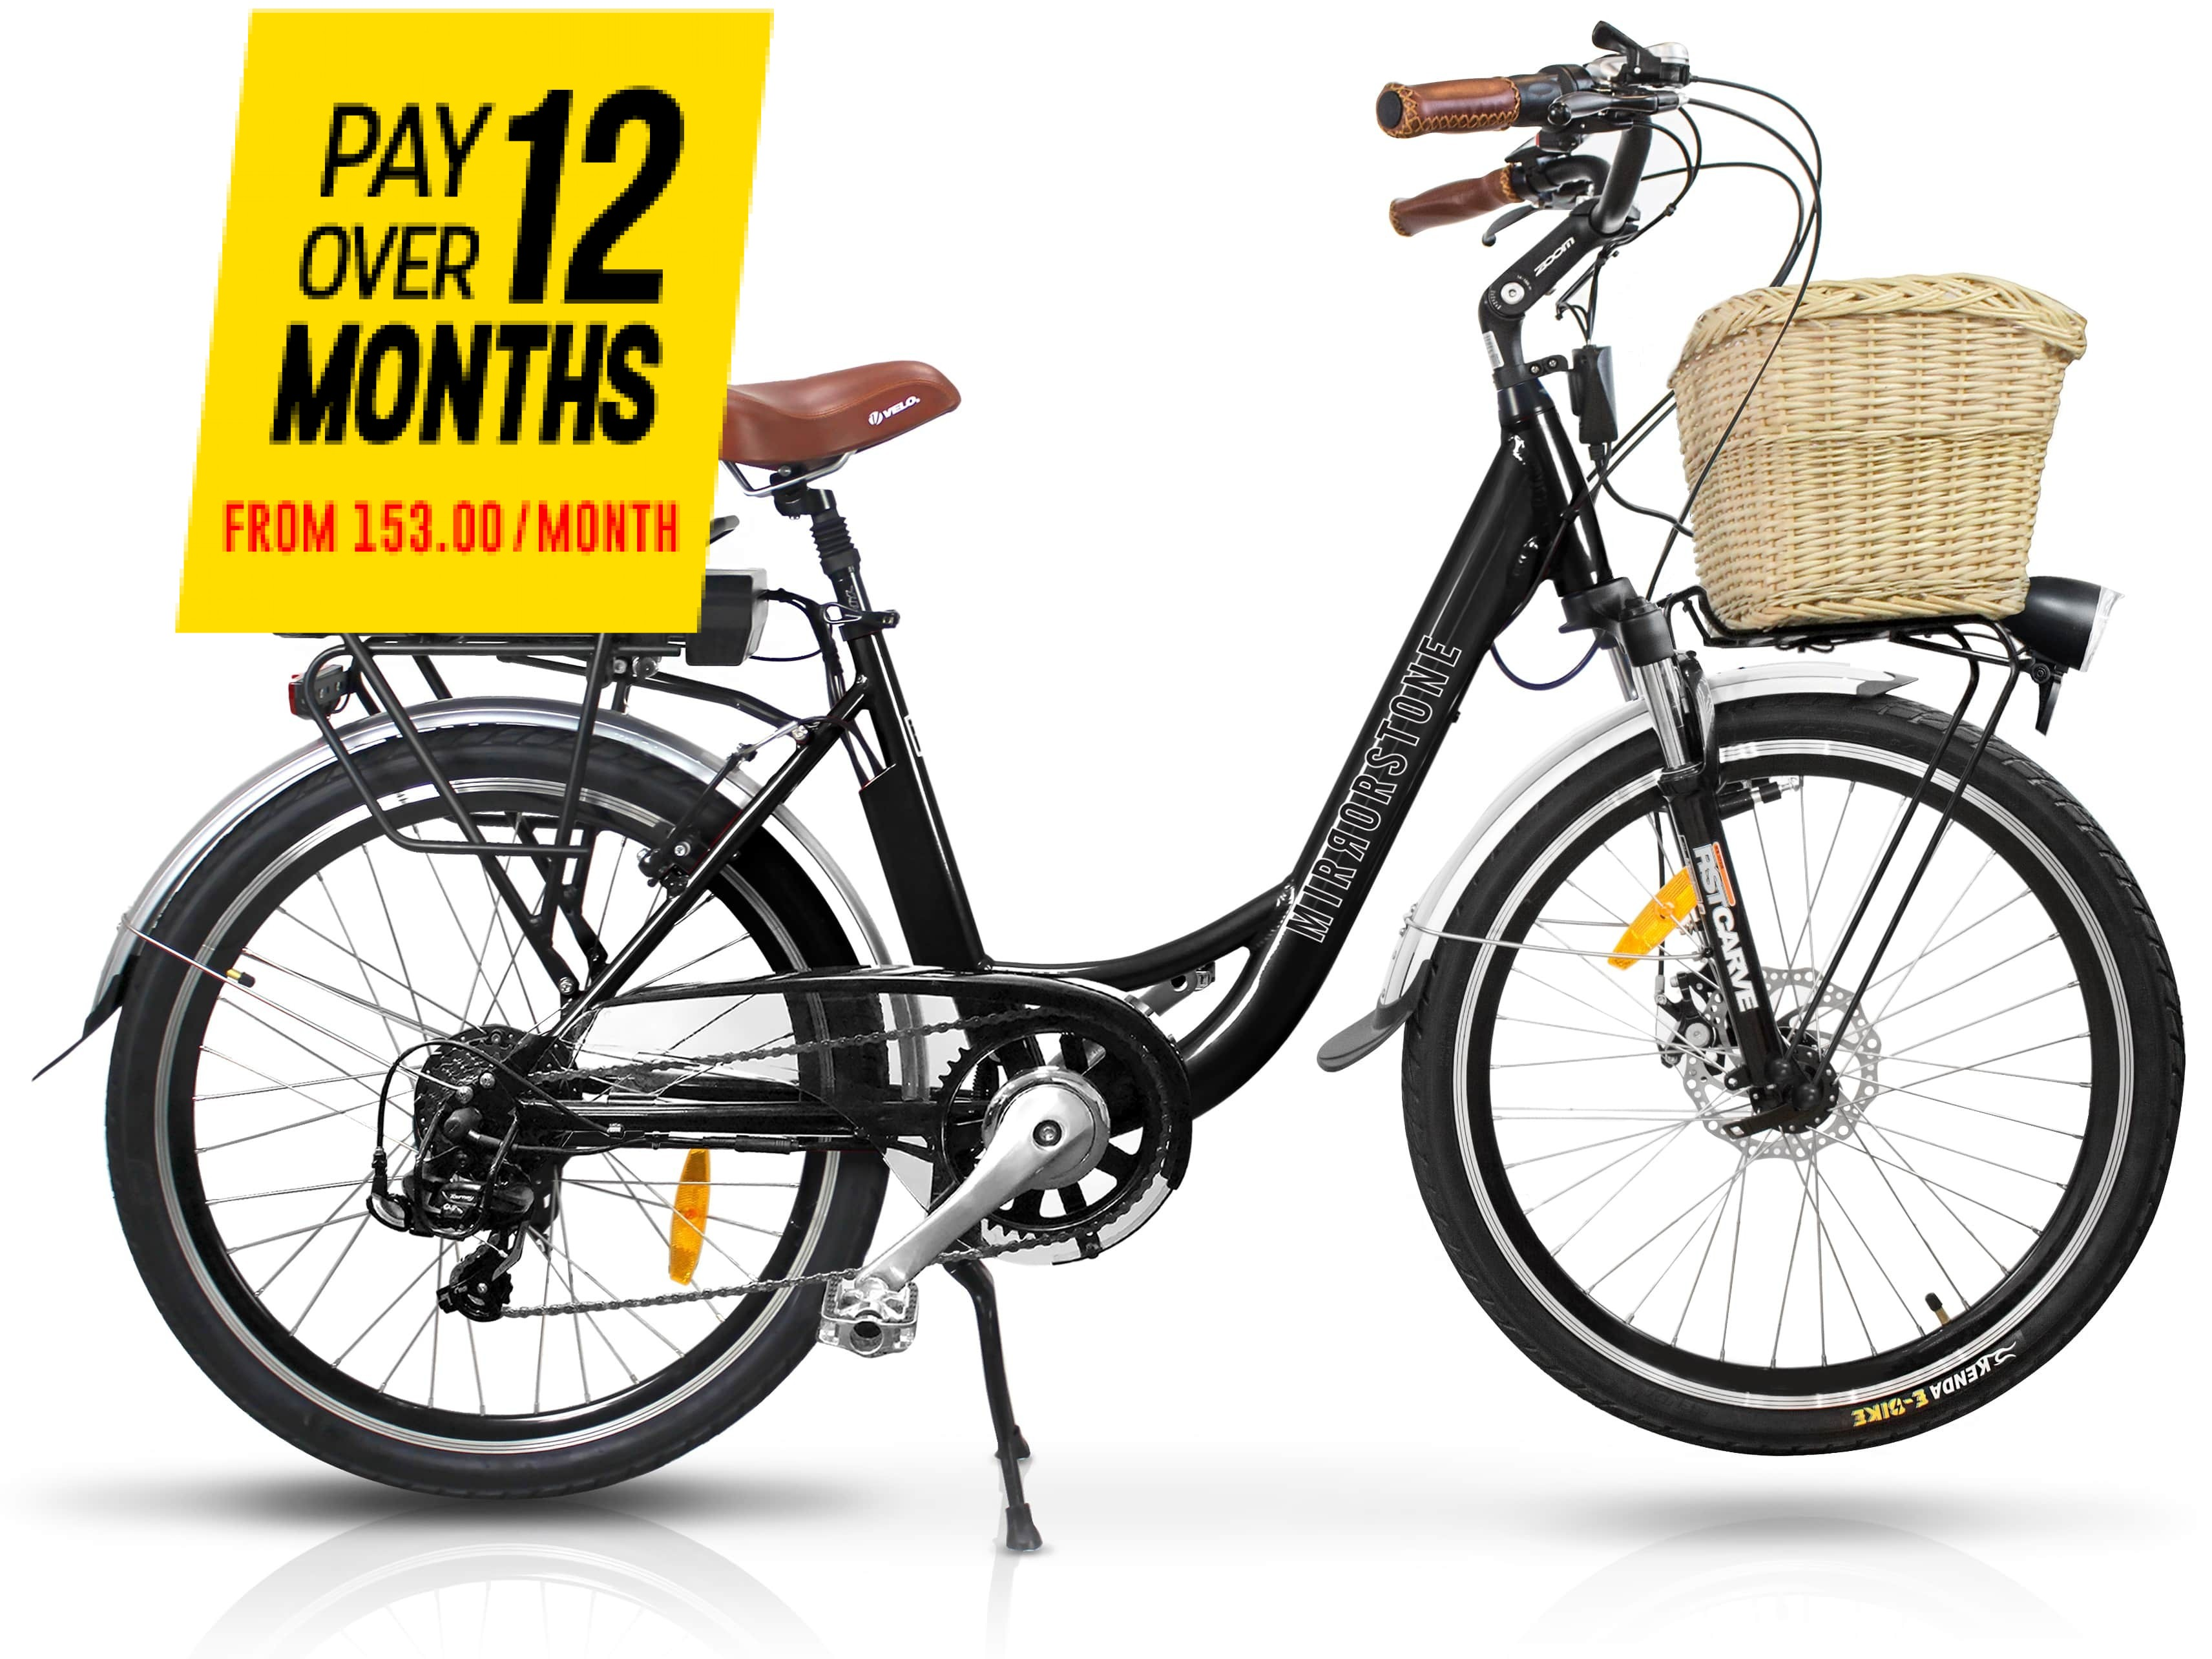 Sprint Electric Bike Black Wheels - Now In Stock!